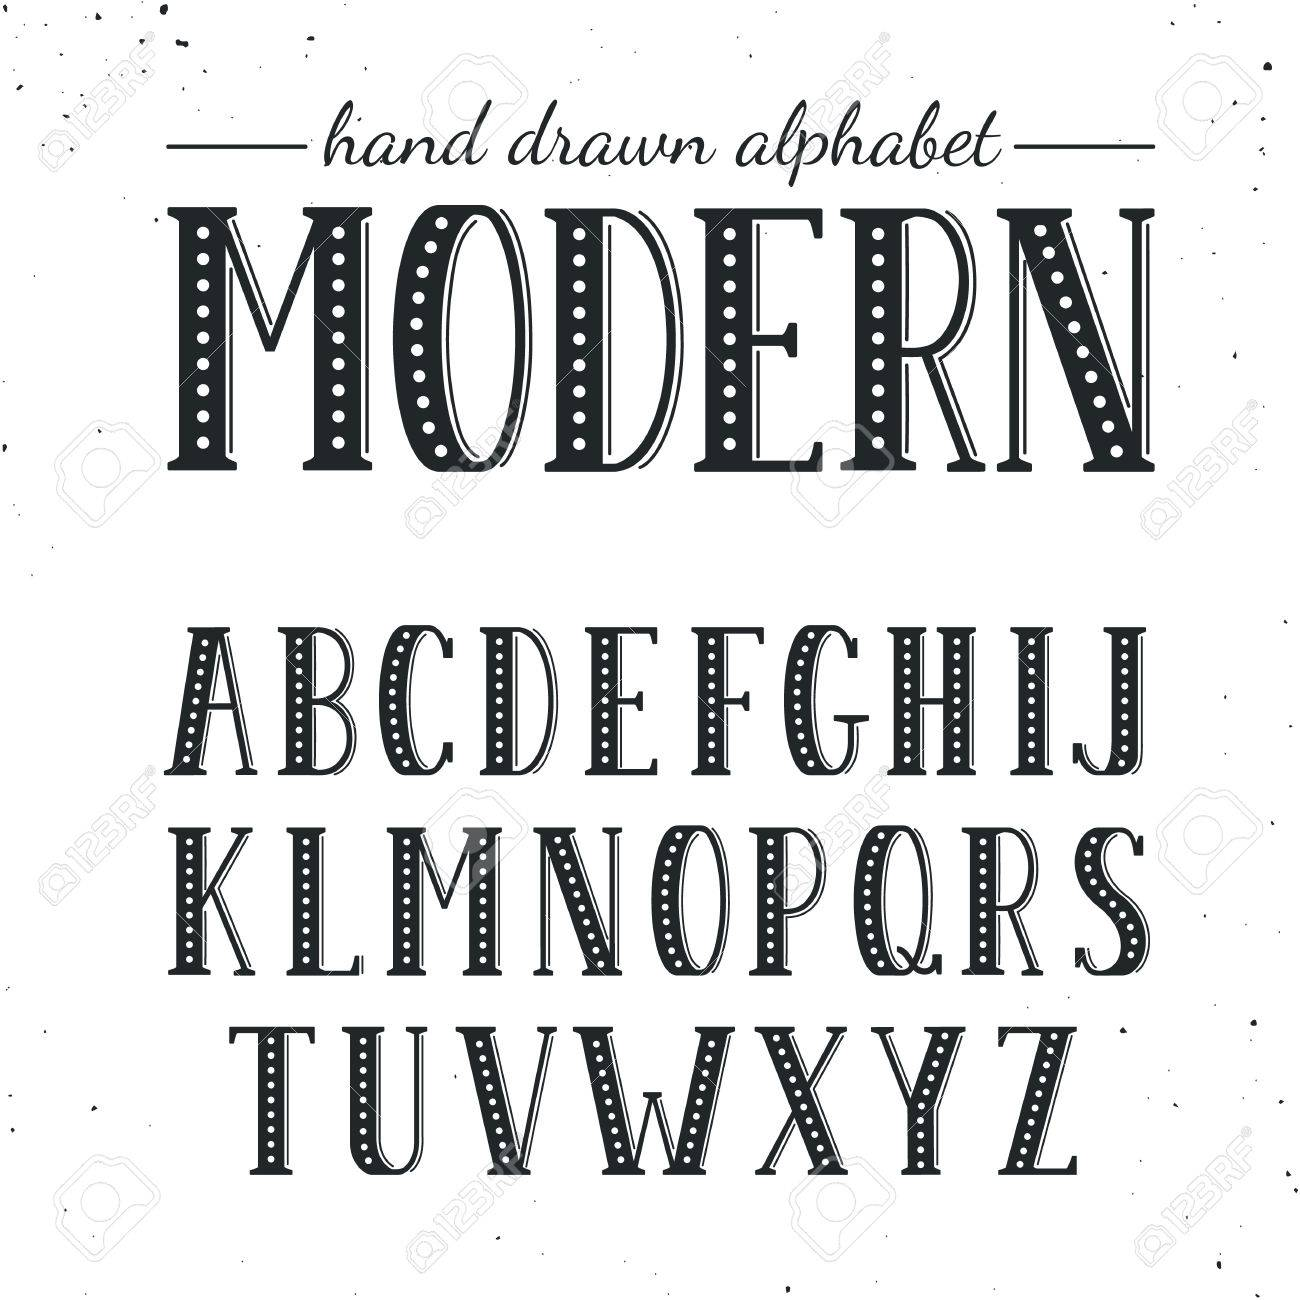 Hand Drawn Alphabet Uppercase Letters And Symbols Isolated On White Background Handdrawn Typography